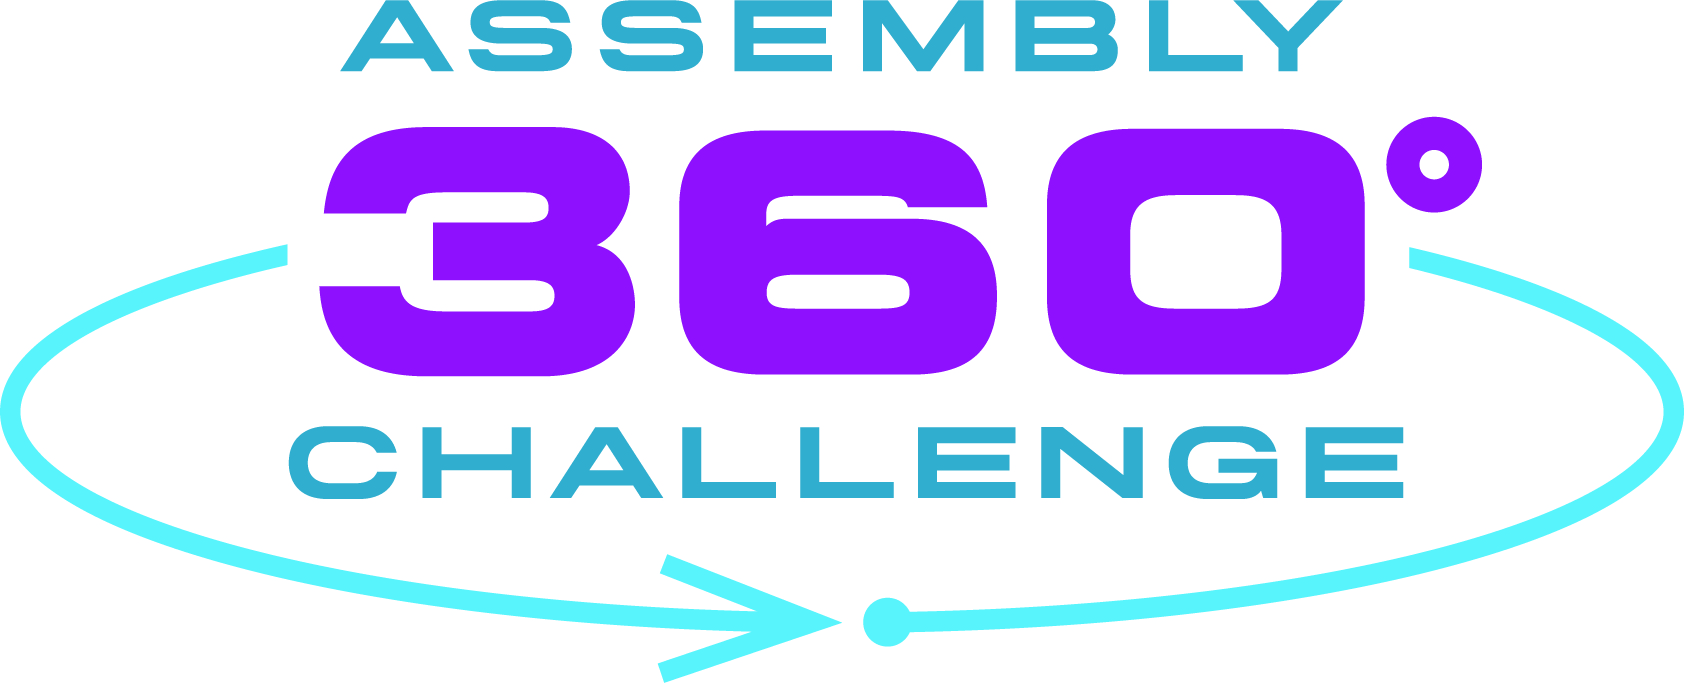 Assembly360Challenge_cmyk